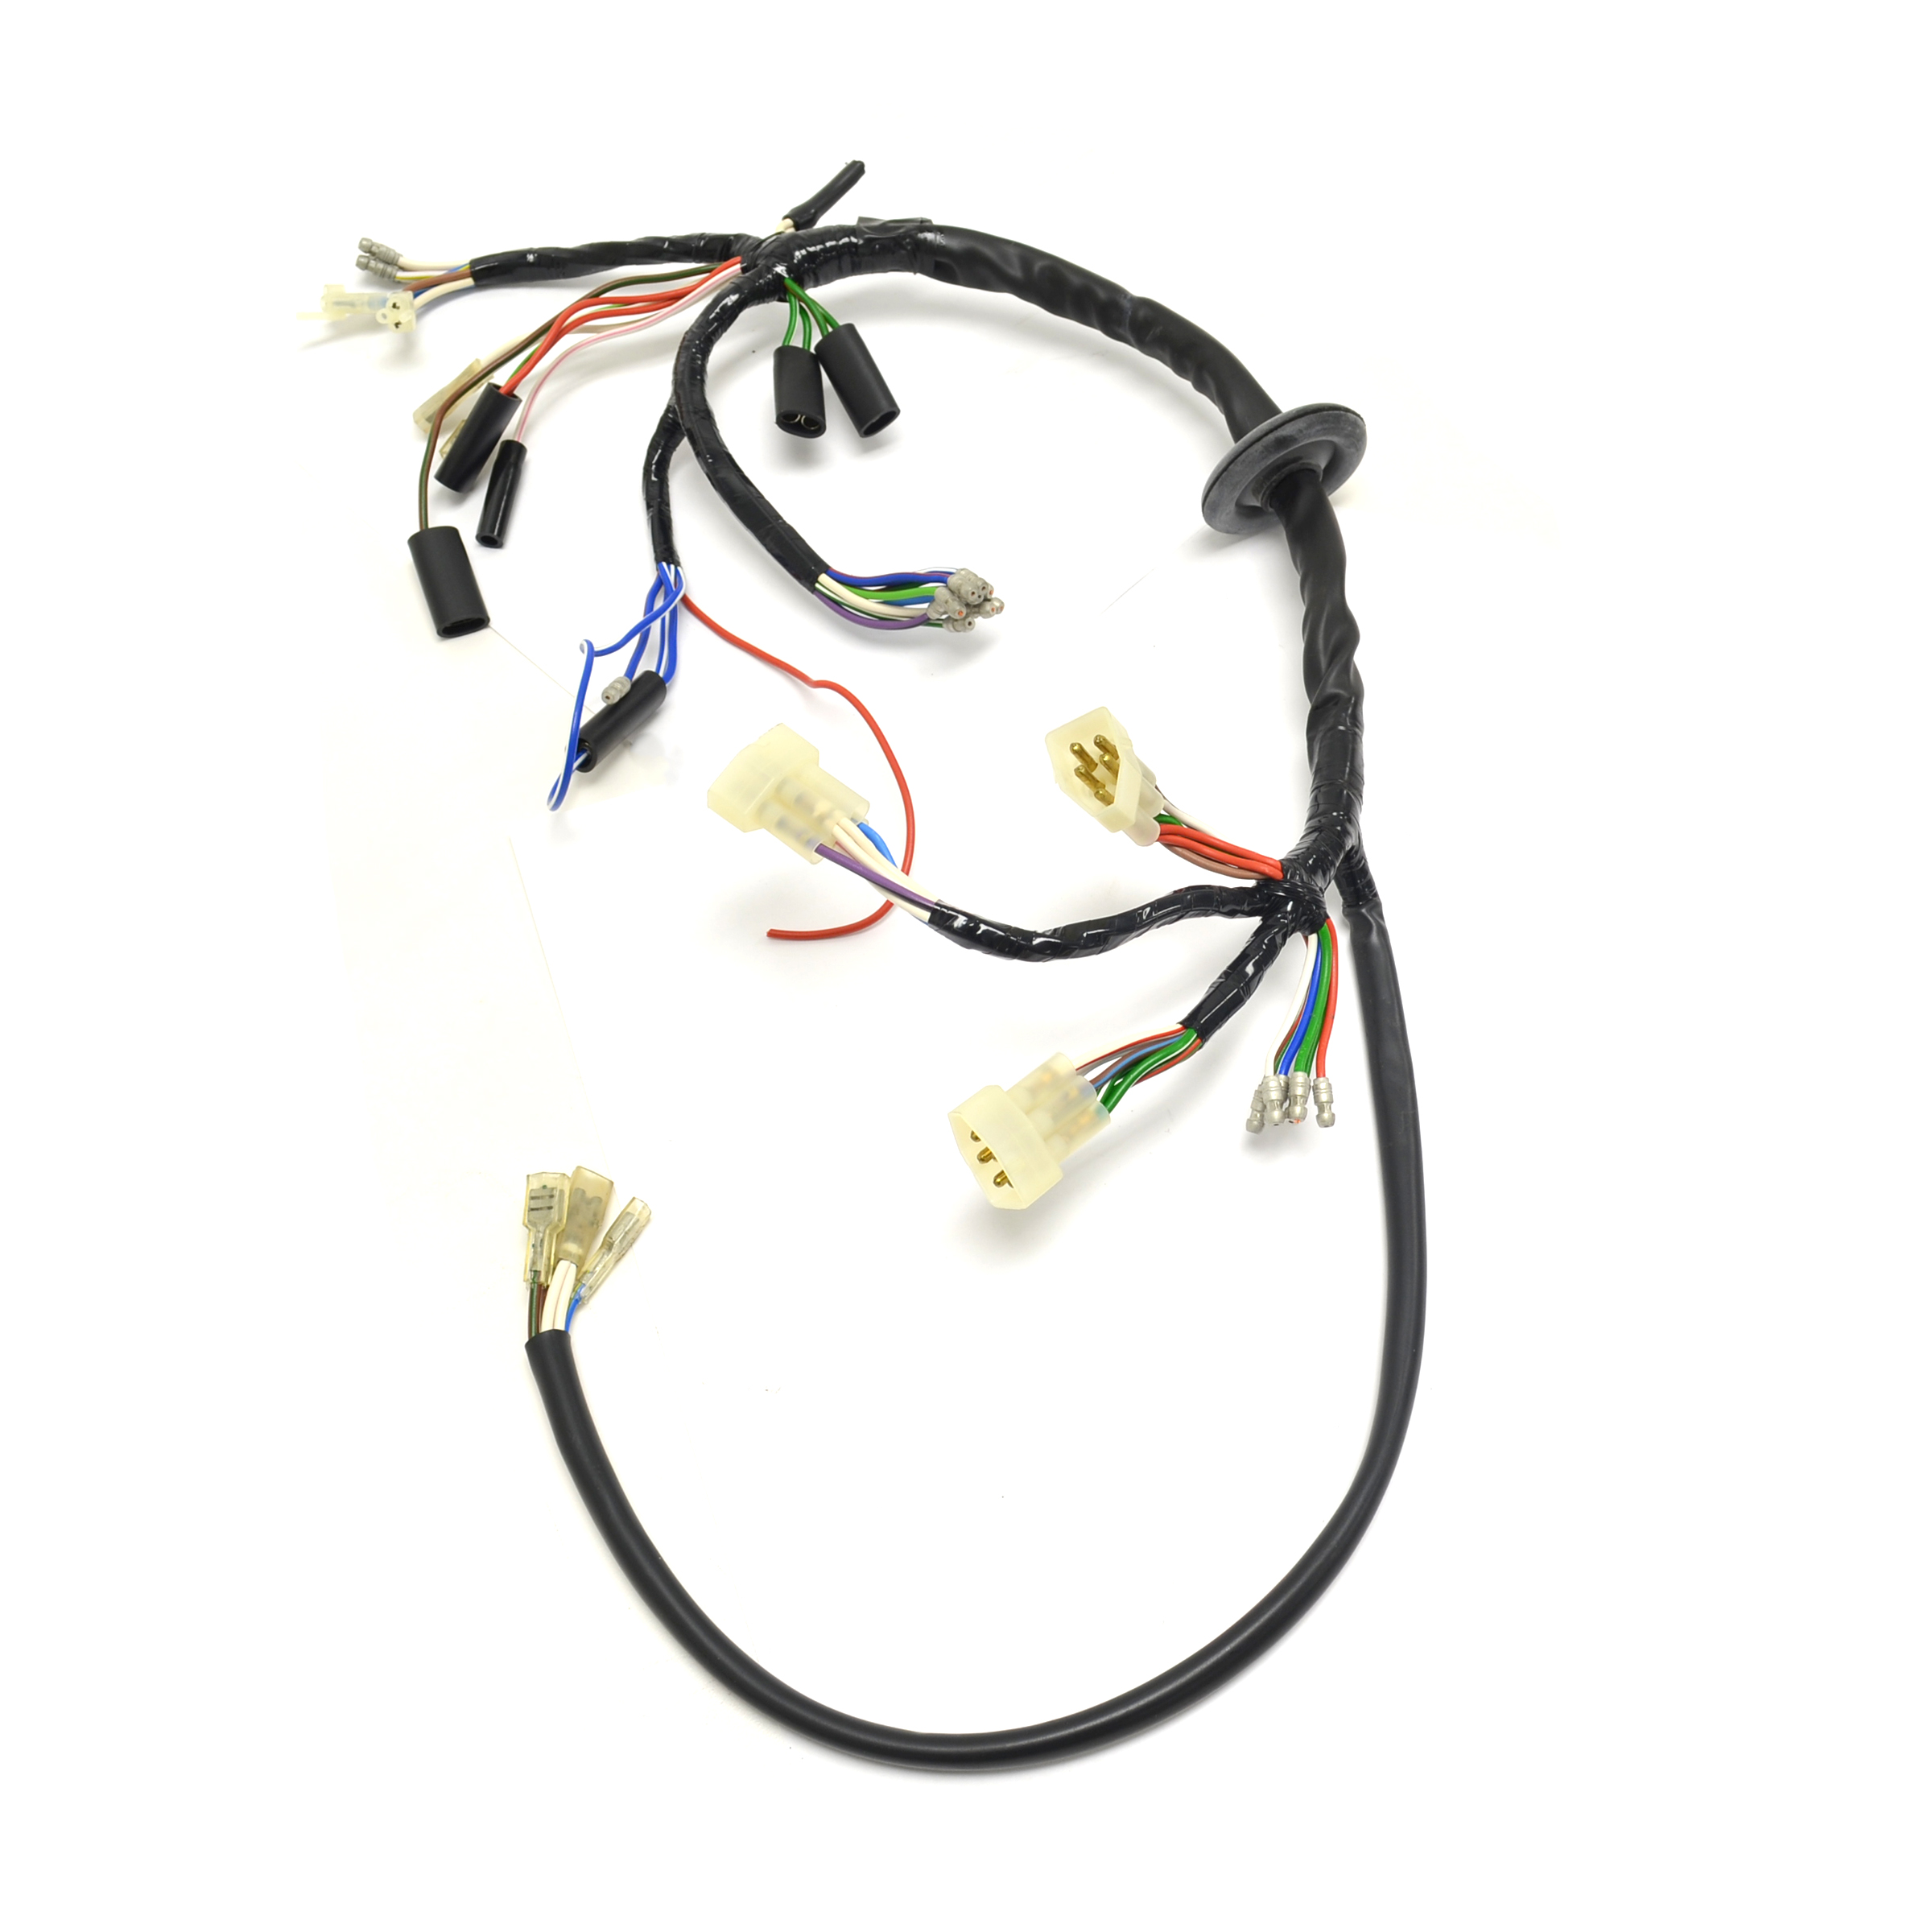 H4 Headlight Wiring Harness